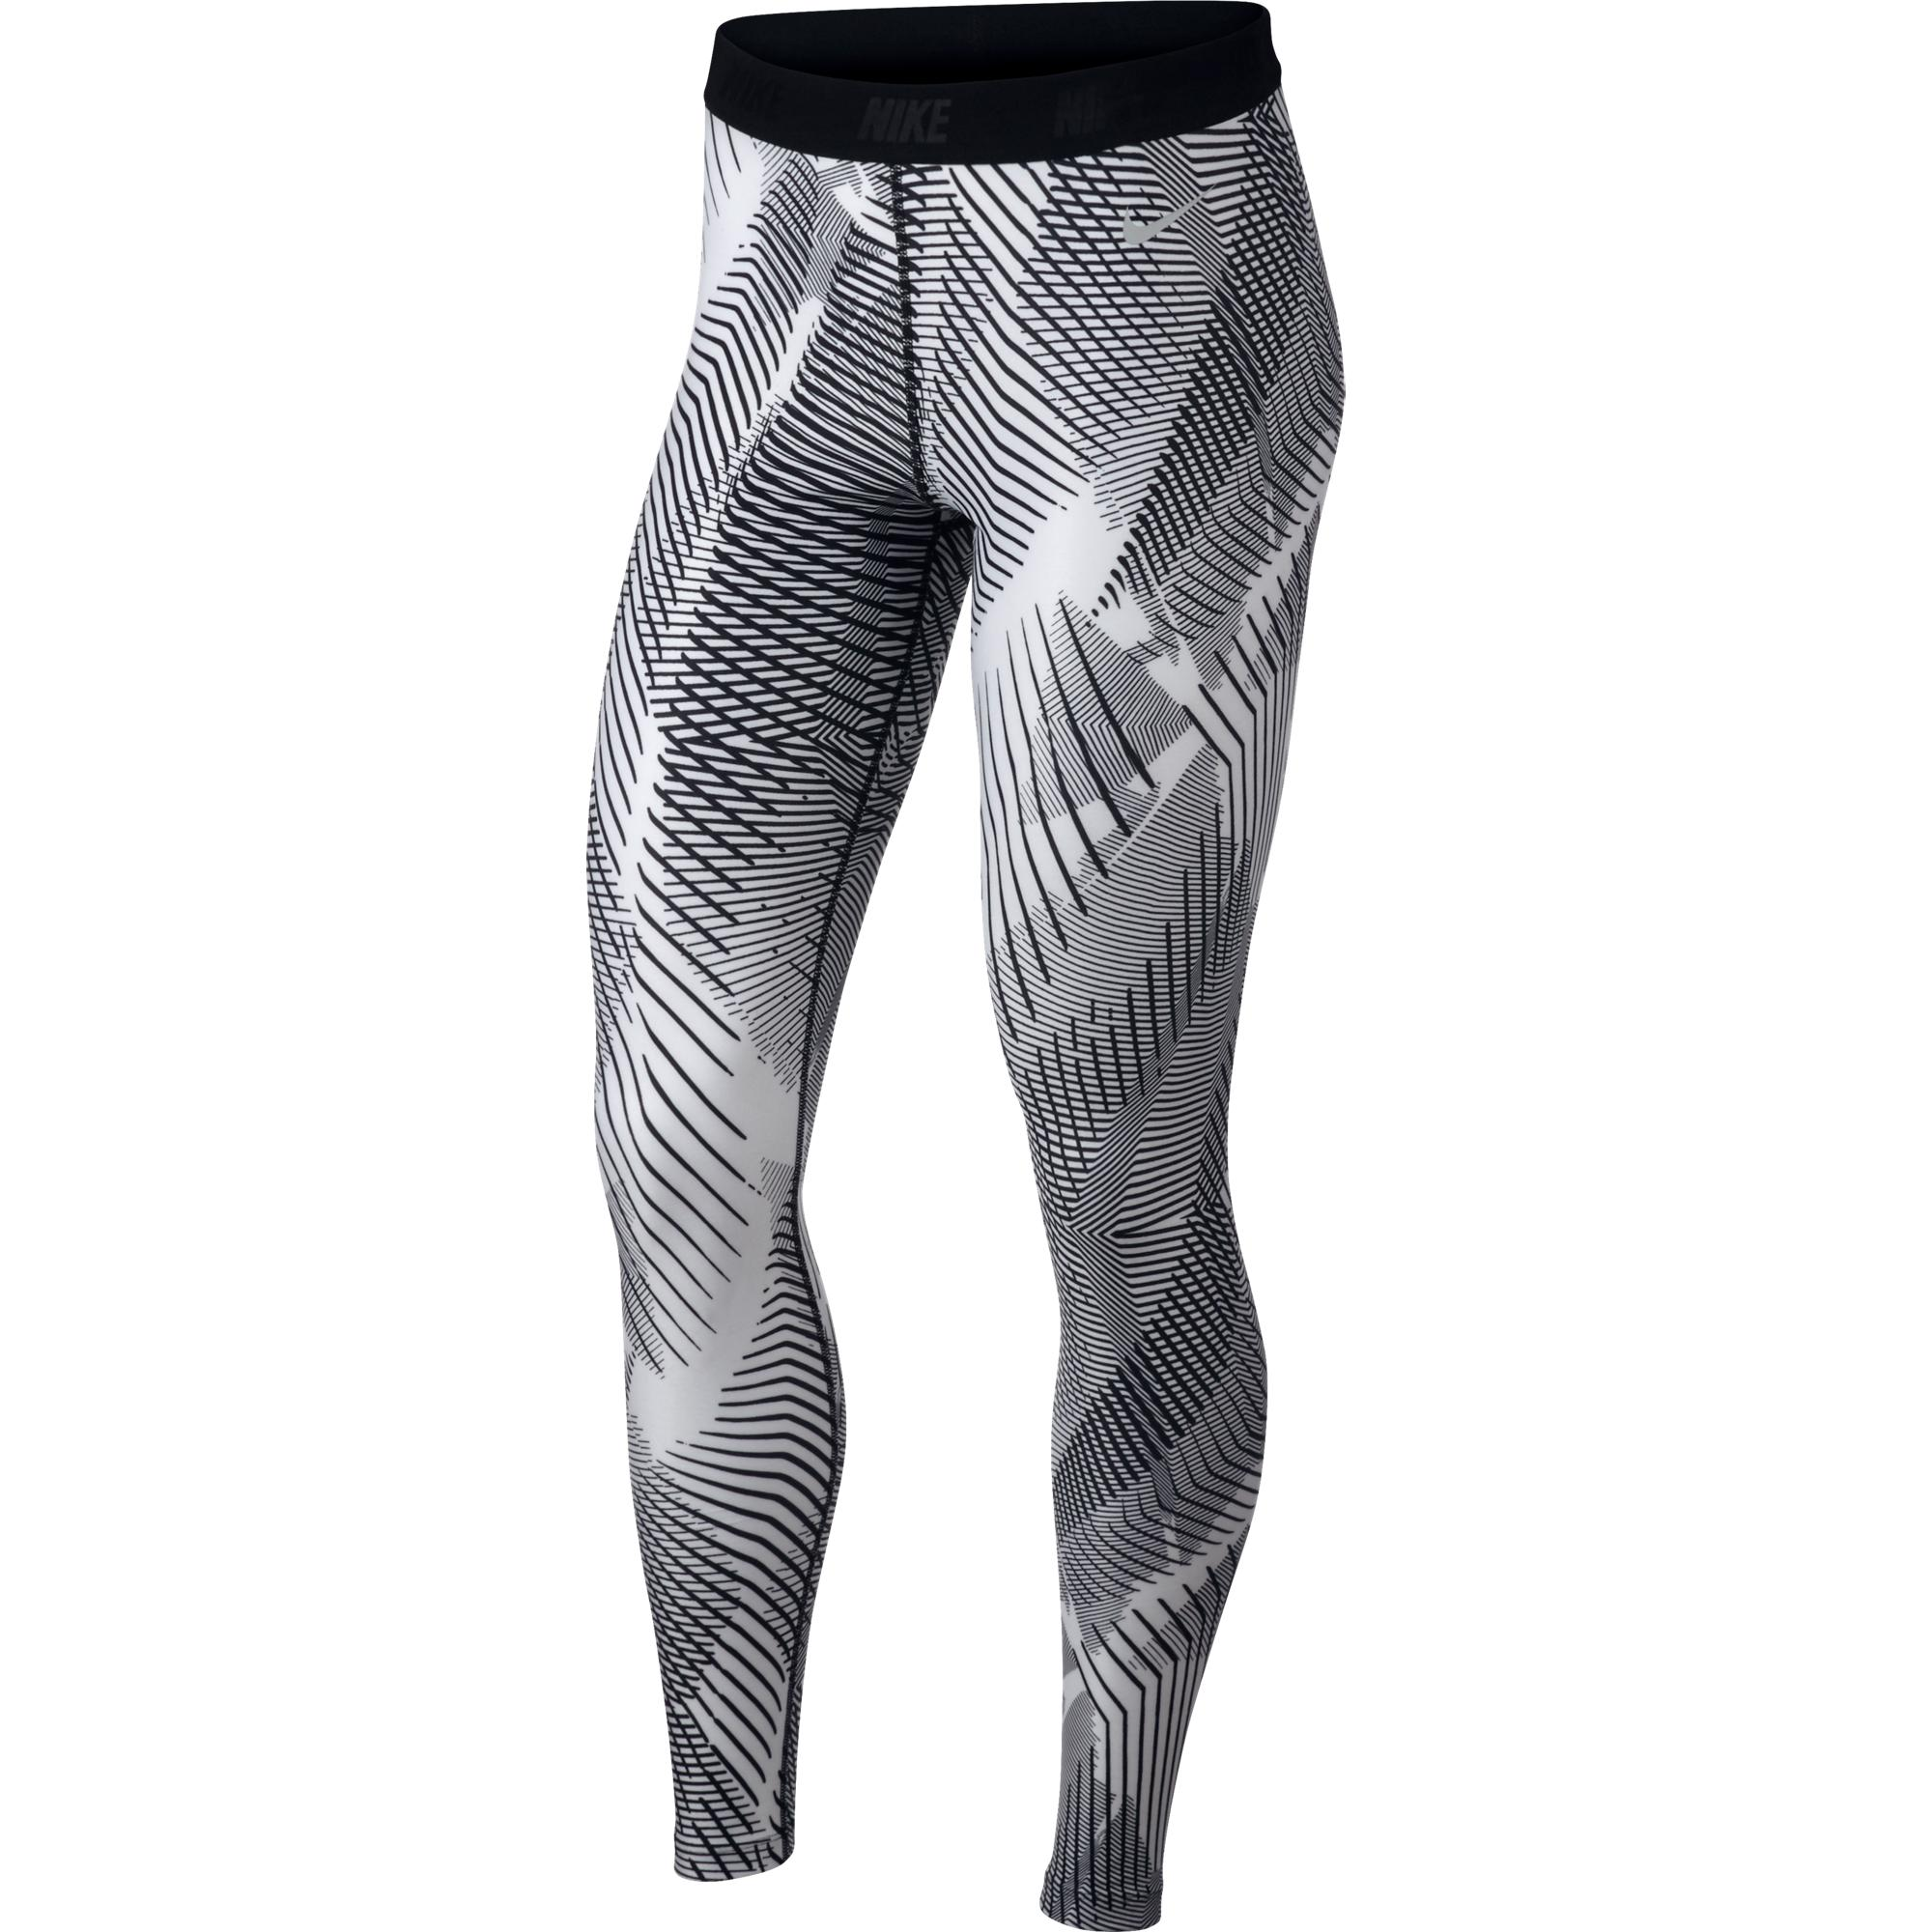 Women's Power Tight